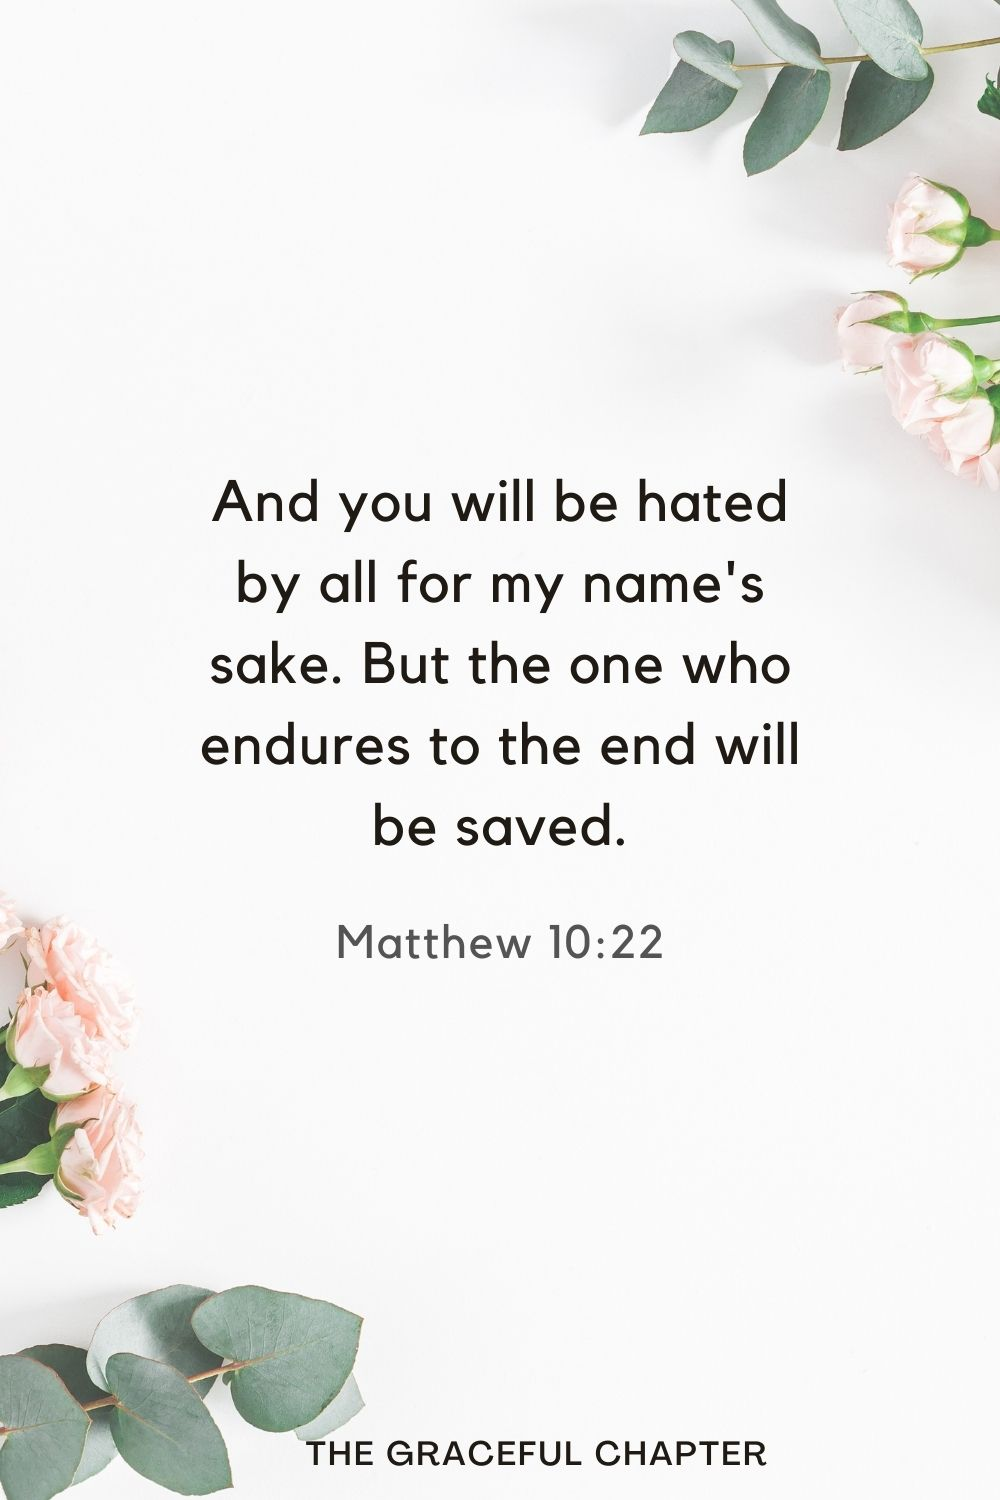 And you will be hated by all for my name's sake. But the one who endures to the end will be saved. Matthew 10:22